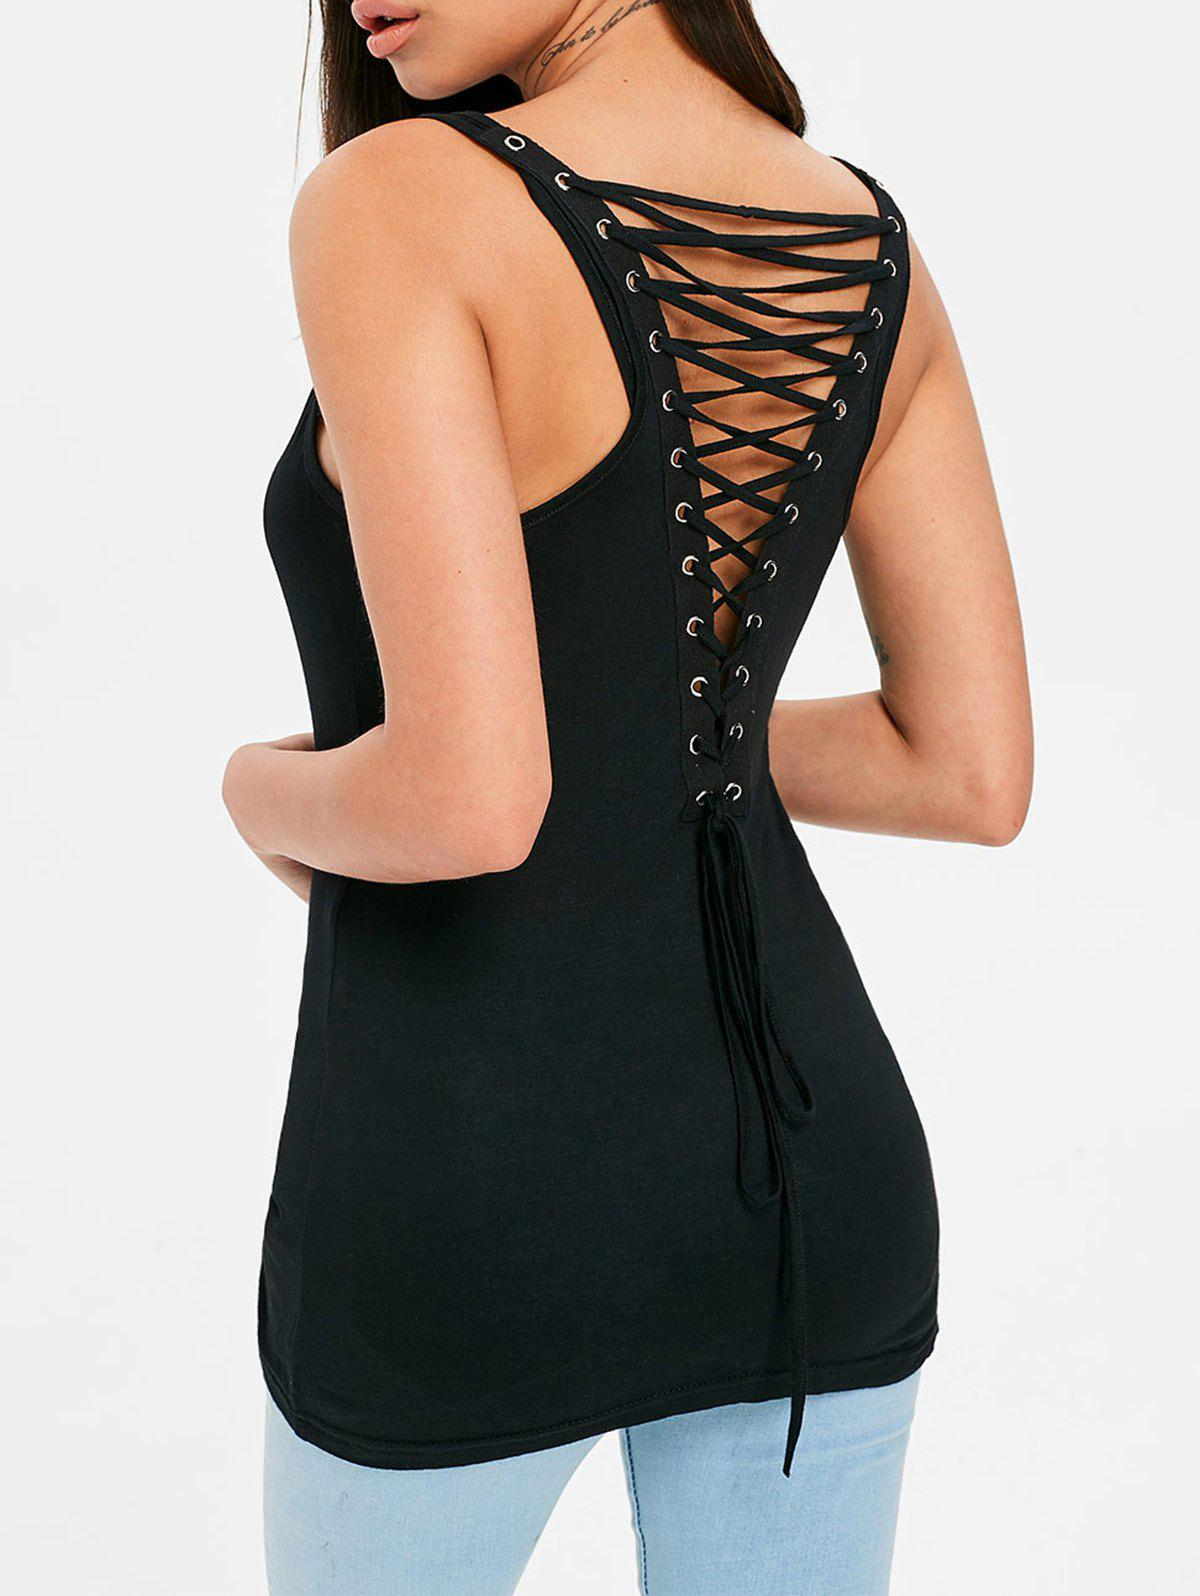 Lace Up Back Fitted Tank Top open back twist fitted tank top